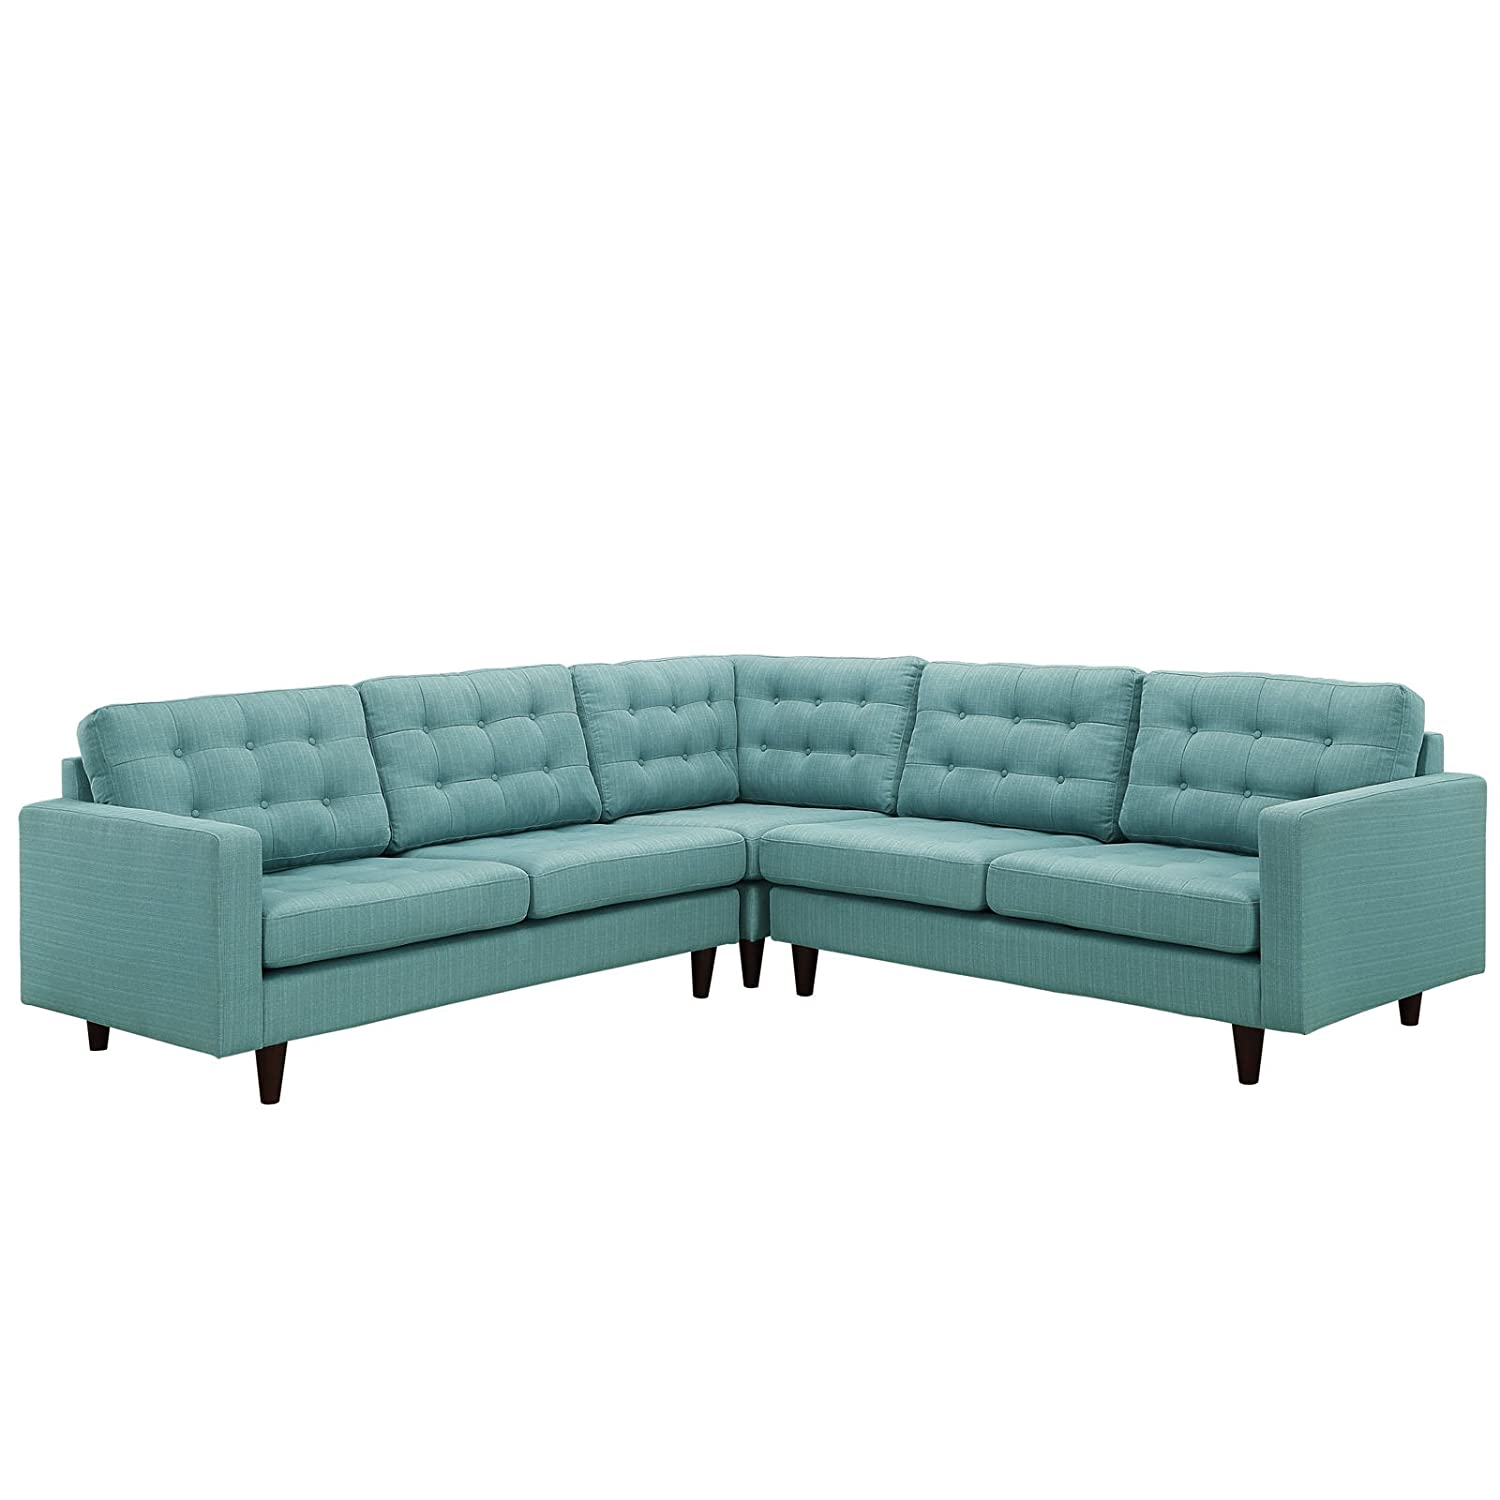 LexMod Empress 3 Piece Fabric Sectional Sofa Set in Laguna